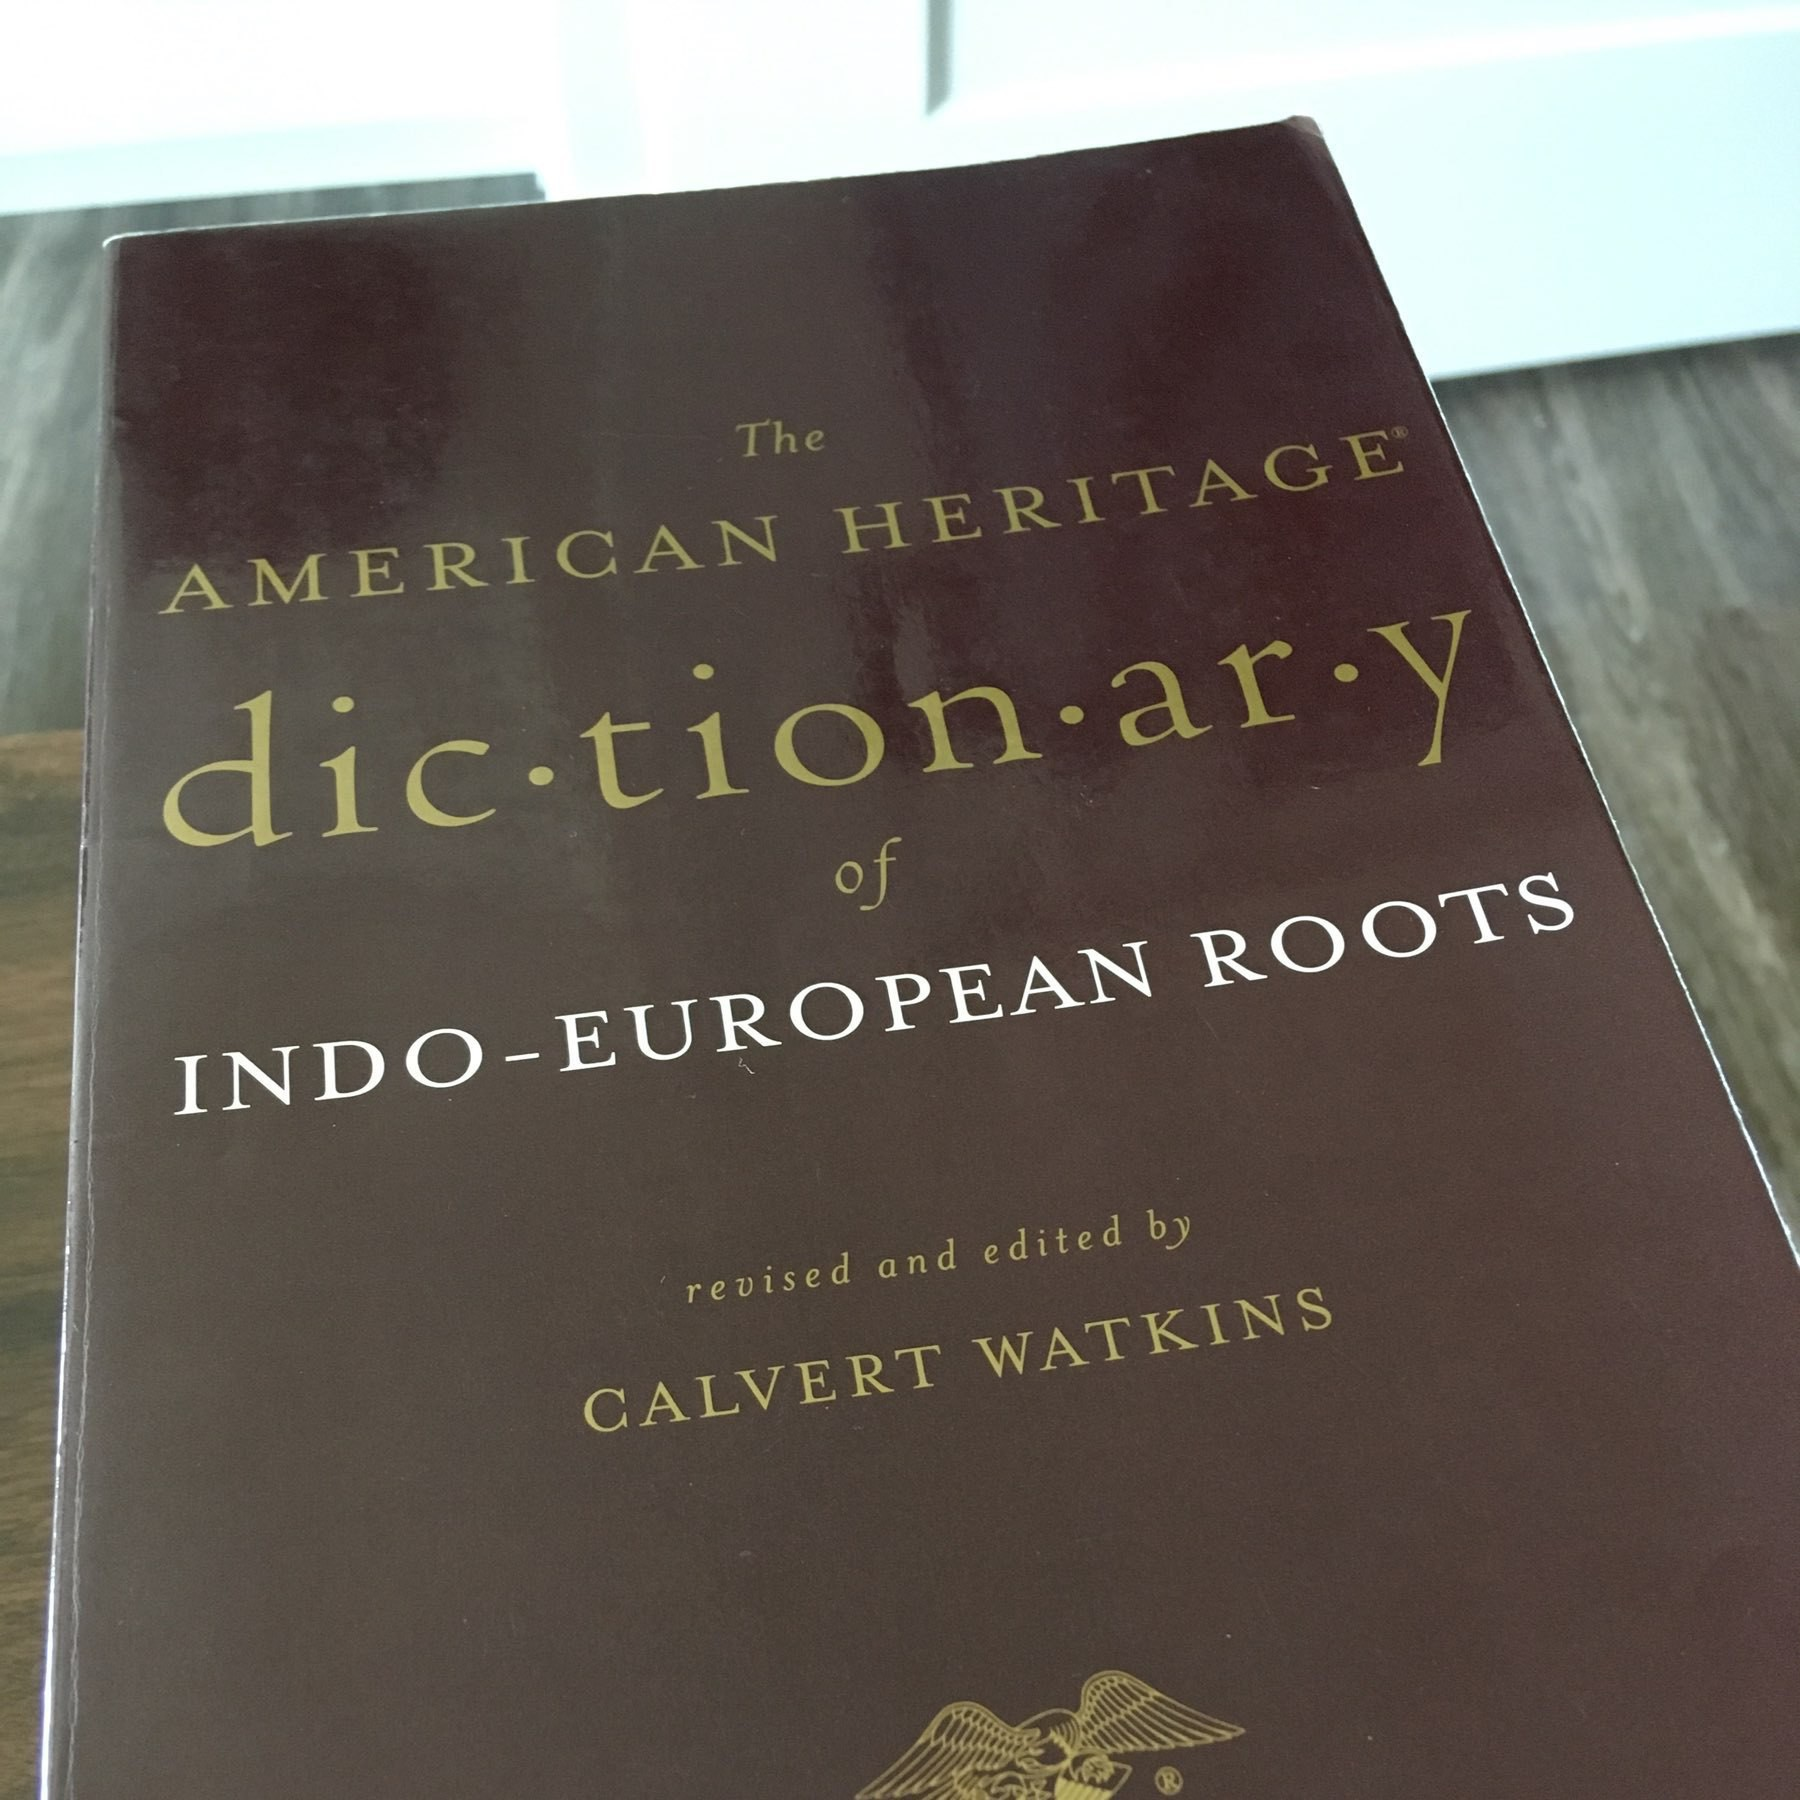 The American Heritage Dictionary of Indo-European Roots